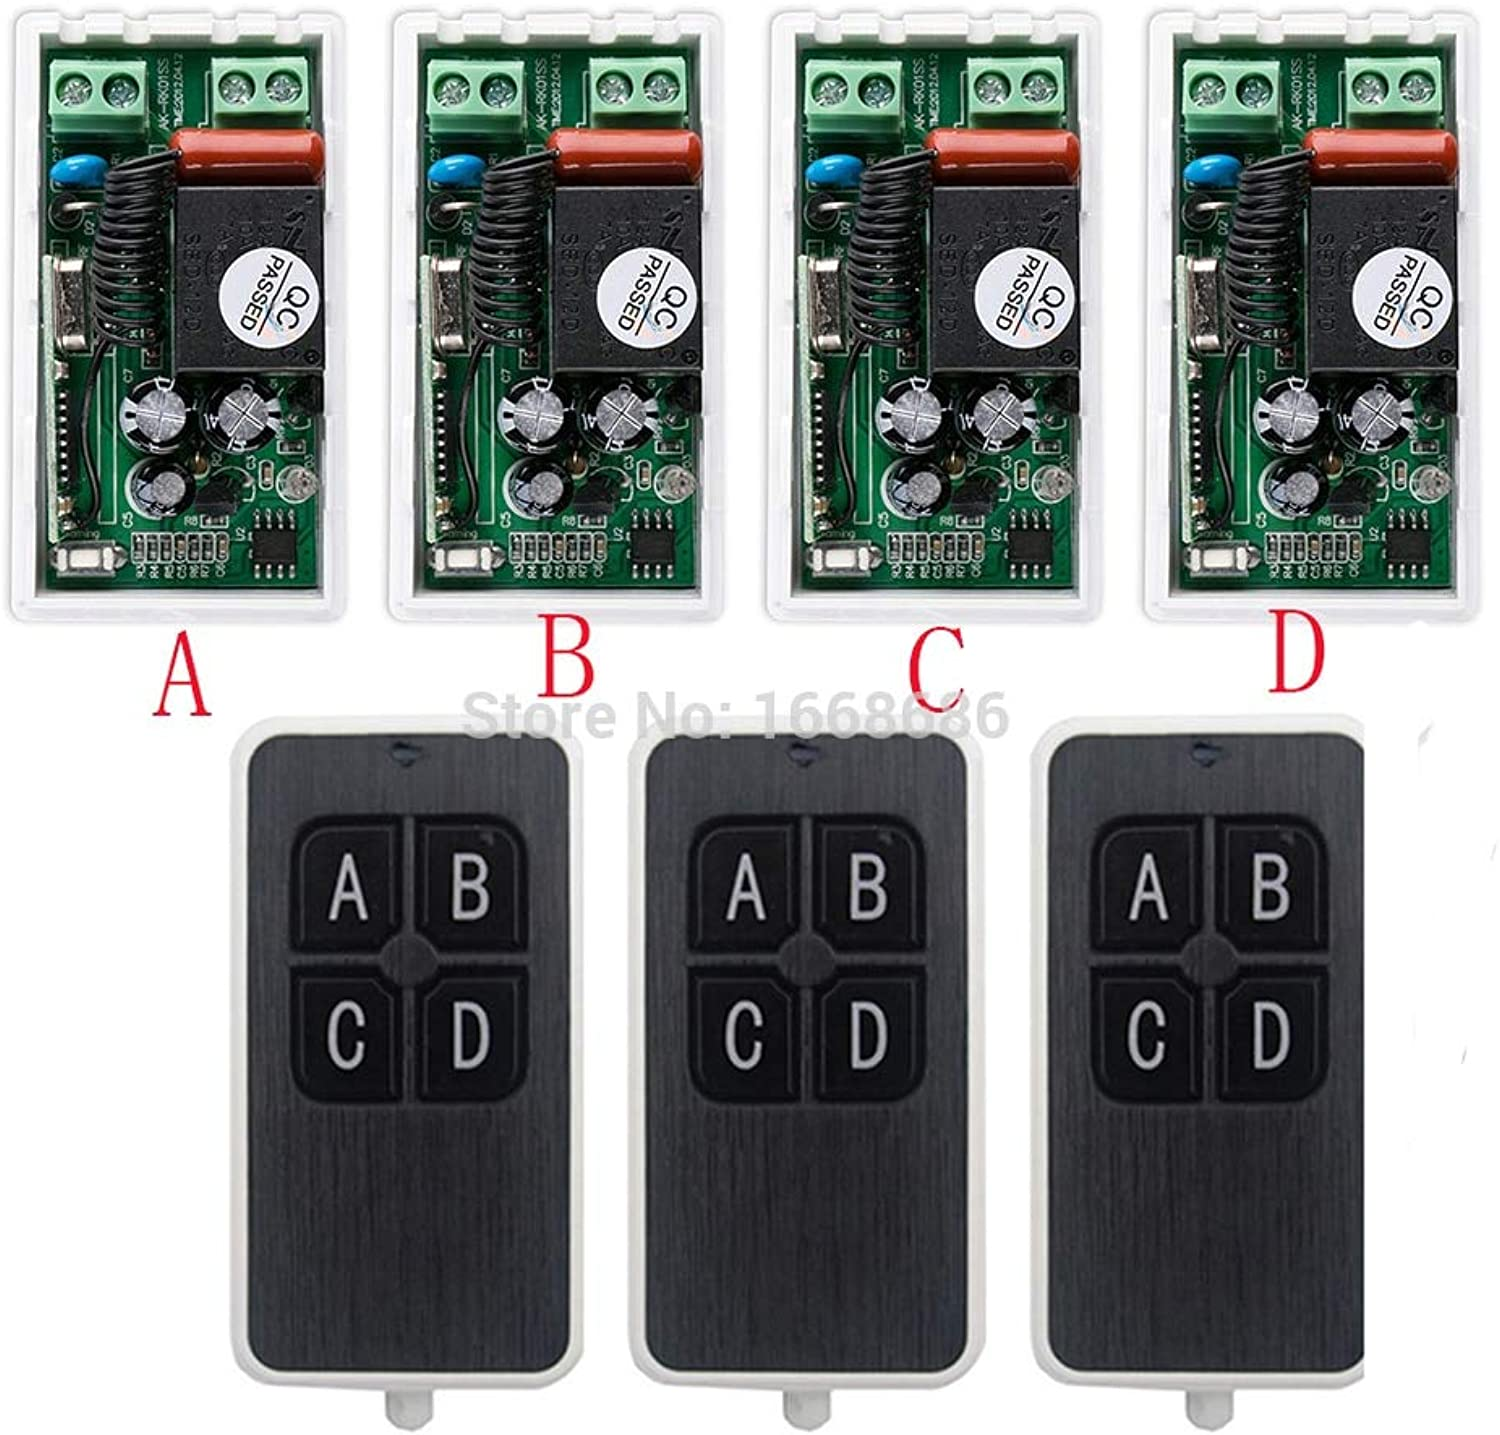 Most Simple Wiring AC220V 1CH 10A Wireless Remote Control Switch System 3X Transmitter + 4X Receiver Relay Smart House zWave